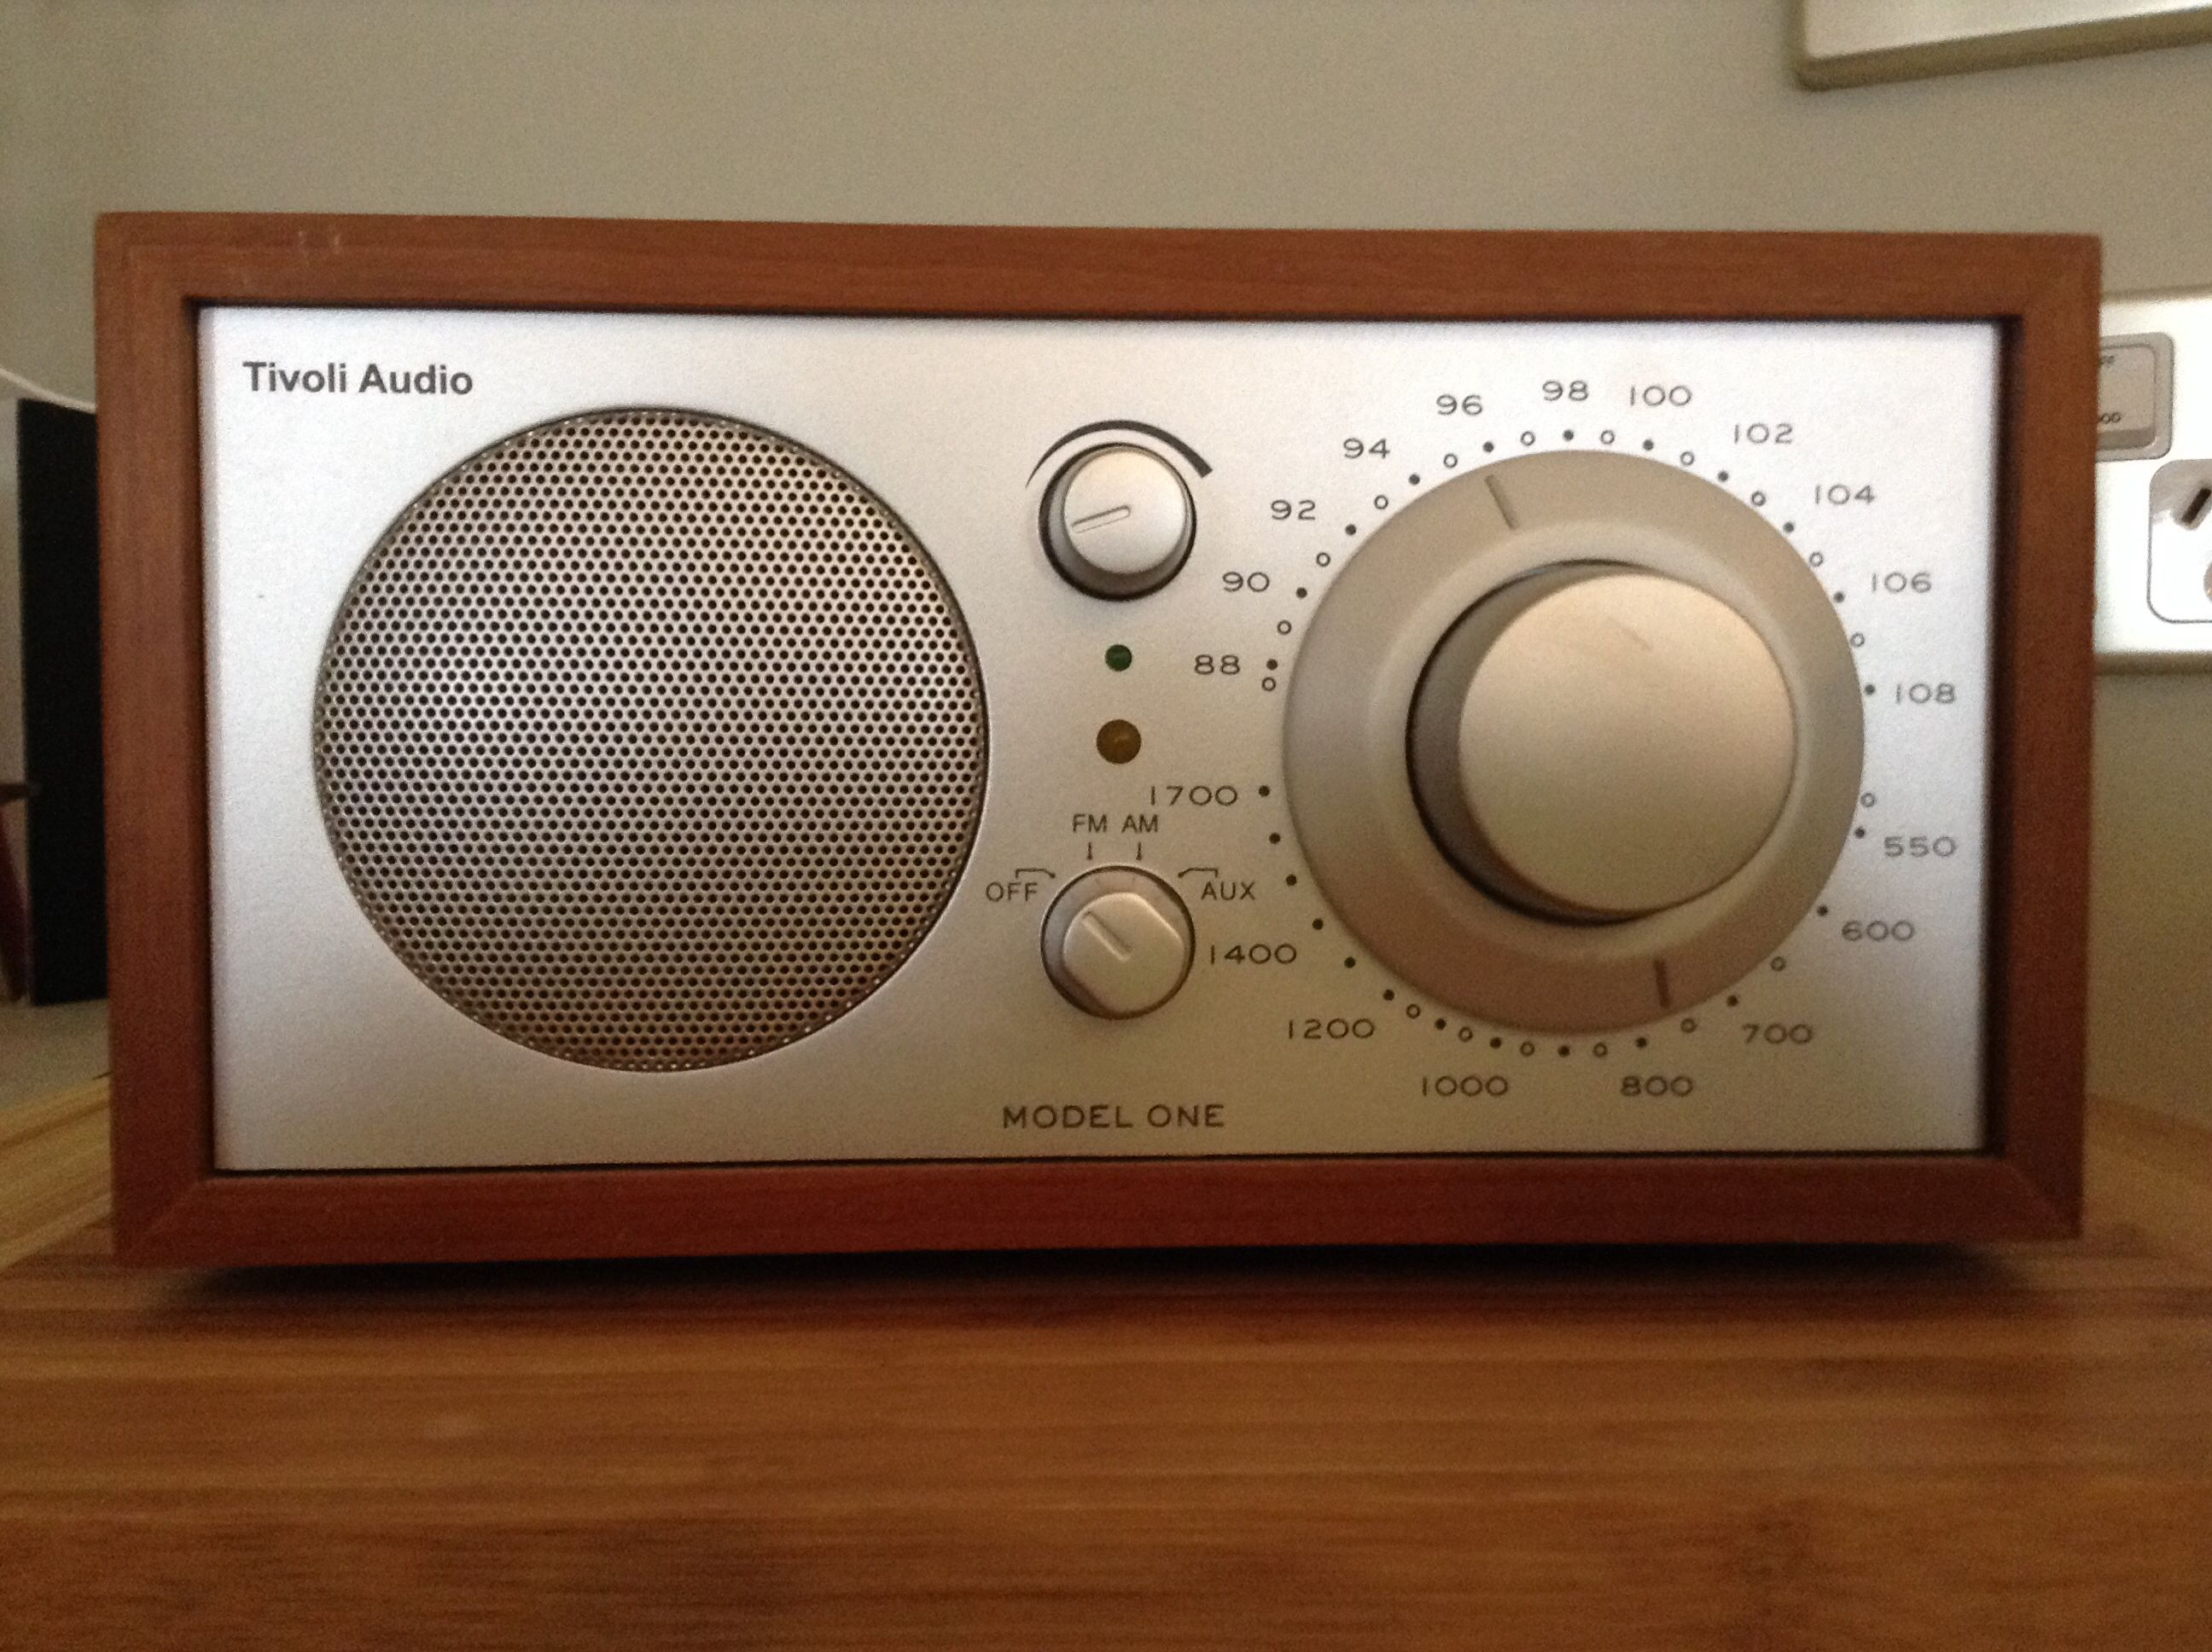 Tivoli Radio Designer Classic Model One Tivoli Audio In 2018 Pinterest Tivoli